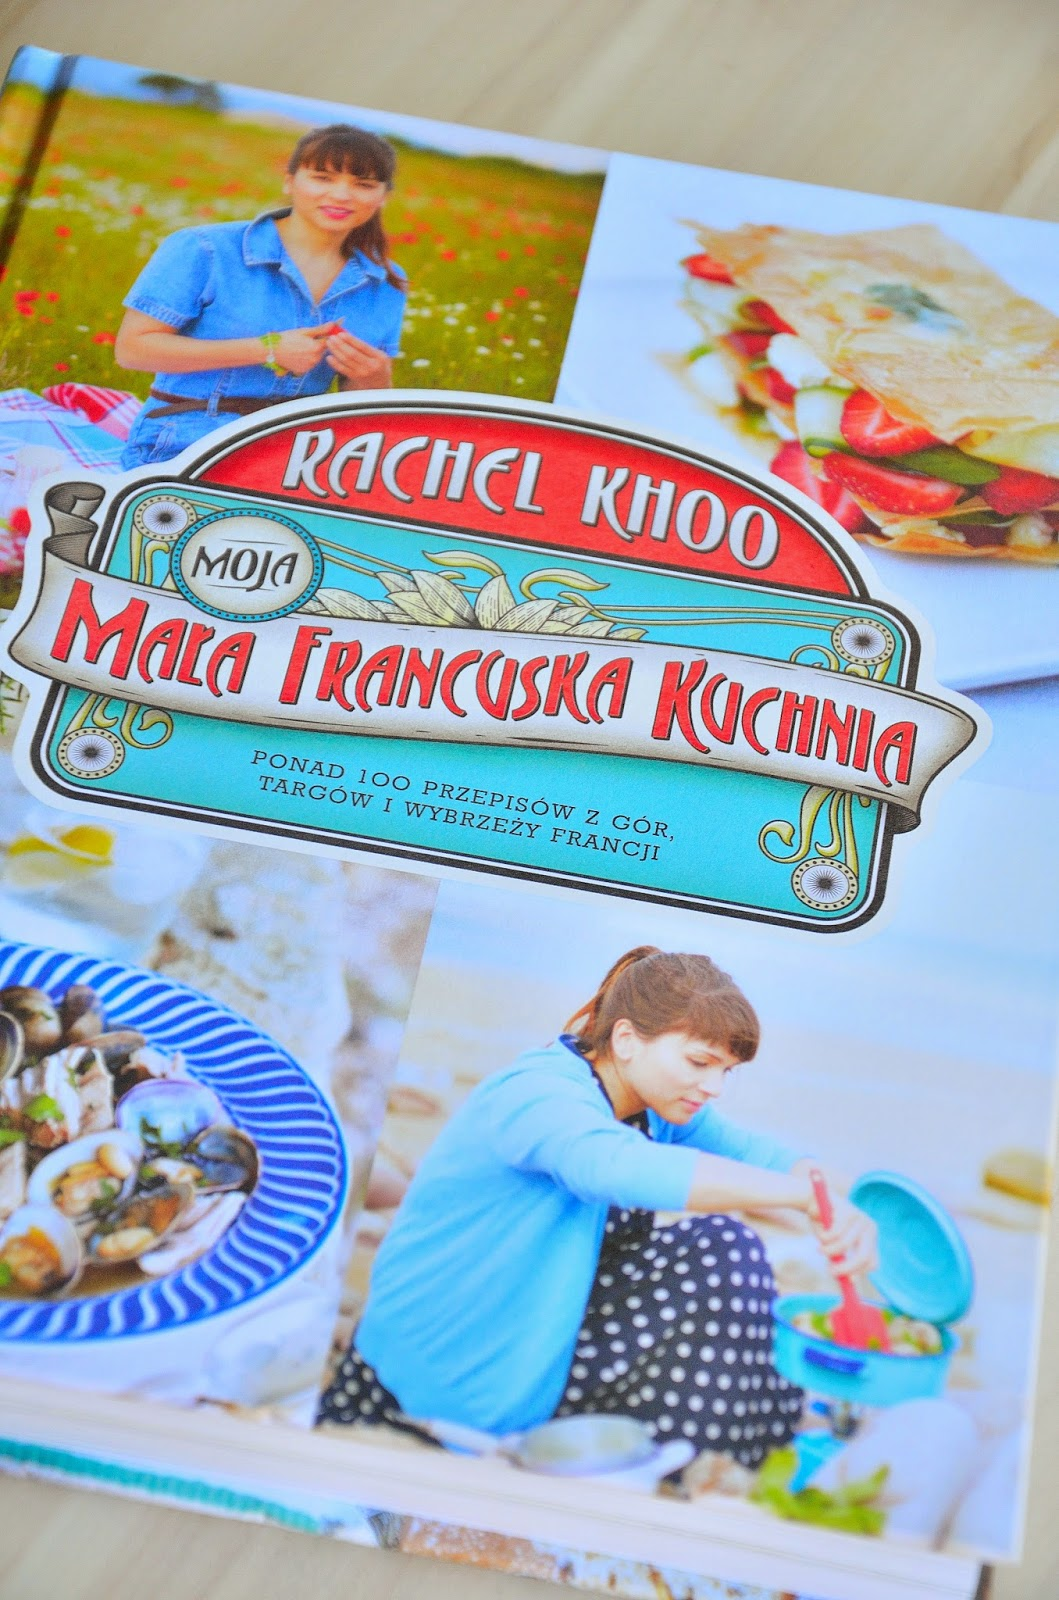 In Cooking We Trust Moja Mala Francuska Kuchnia Rachel Khoo